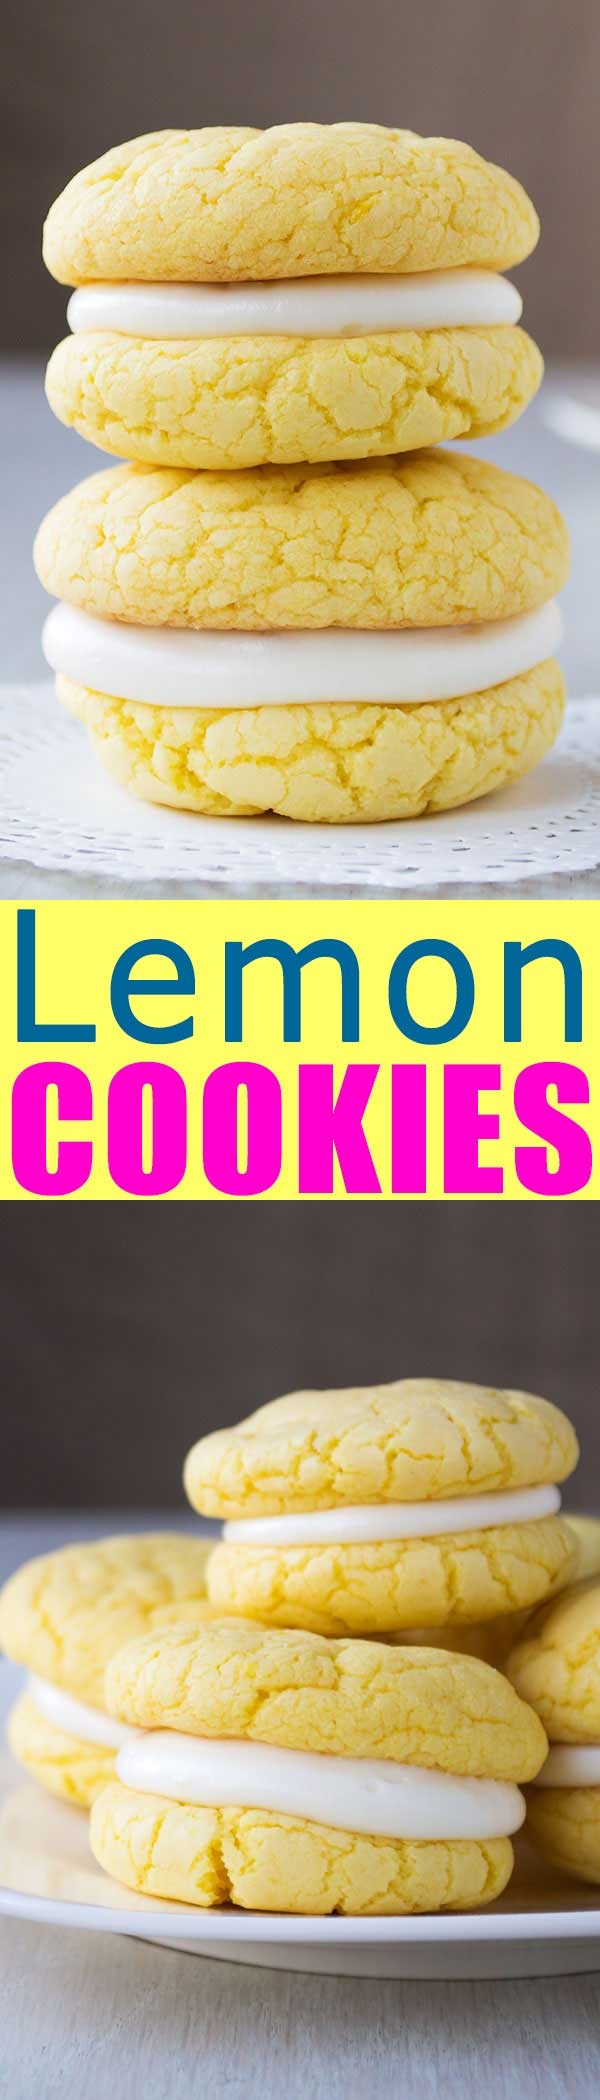 Easy Lemon Sandwich Cookies from cake mix with cream cheese frosting.  So soft and chewy! | #recipe #recipeoftheday #dessert #dessertrecipes #cookies #lemon #creamcheese #food #foodblog #foodgasm #foodgawker #easter #spring #eastercookies